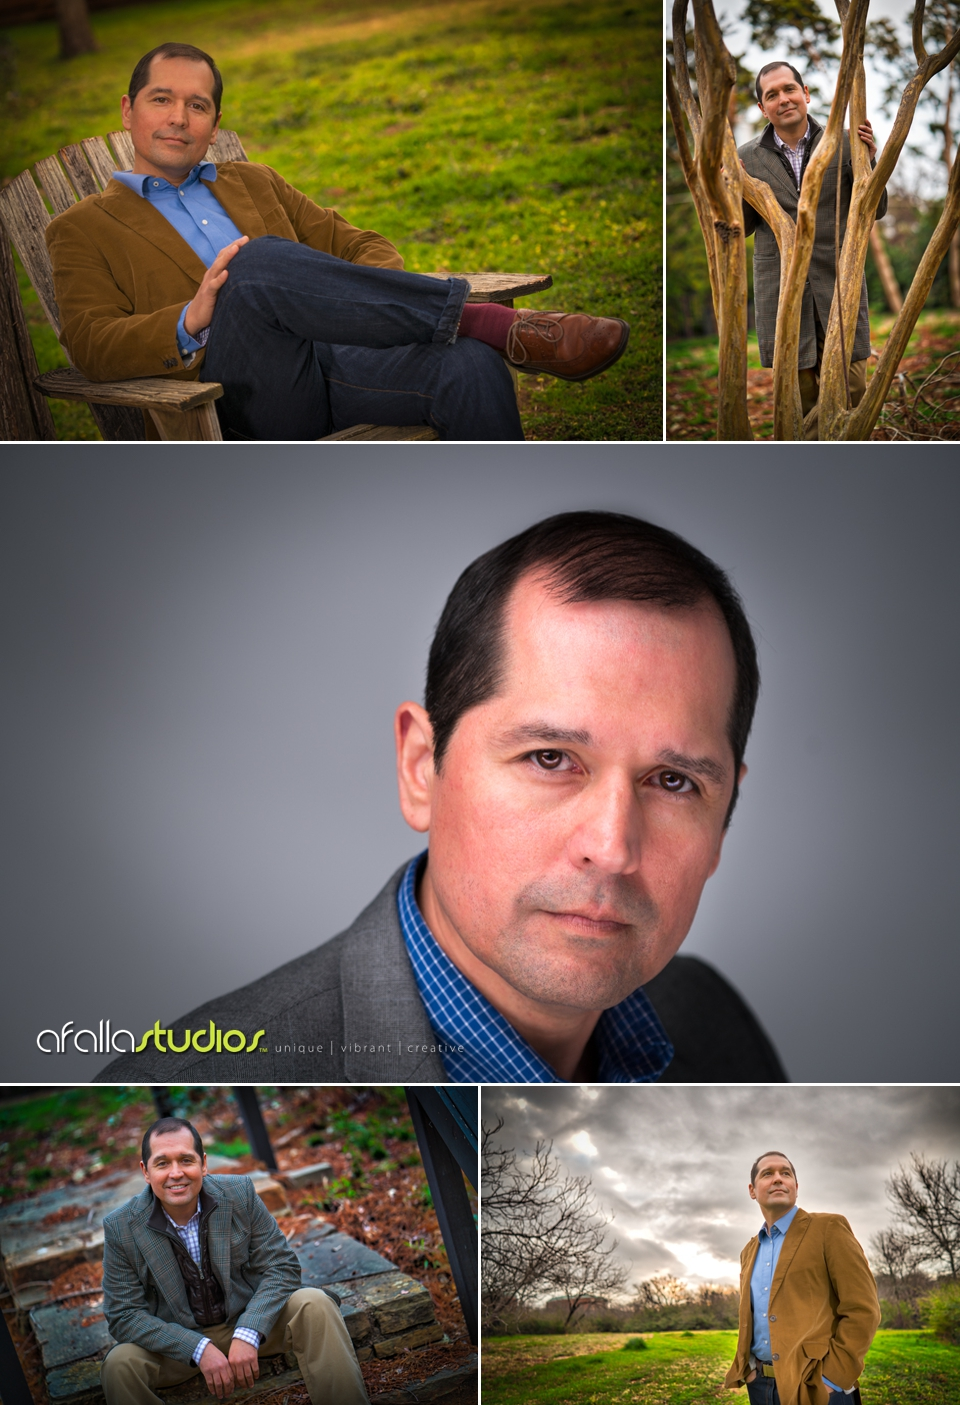 Above: My buddy, John, enjoying his time in front of our camera lens.